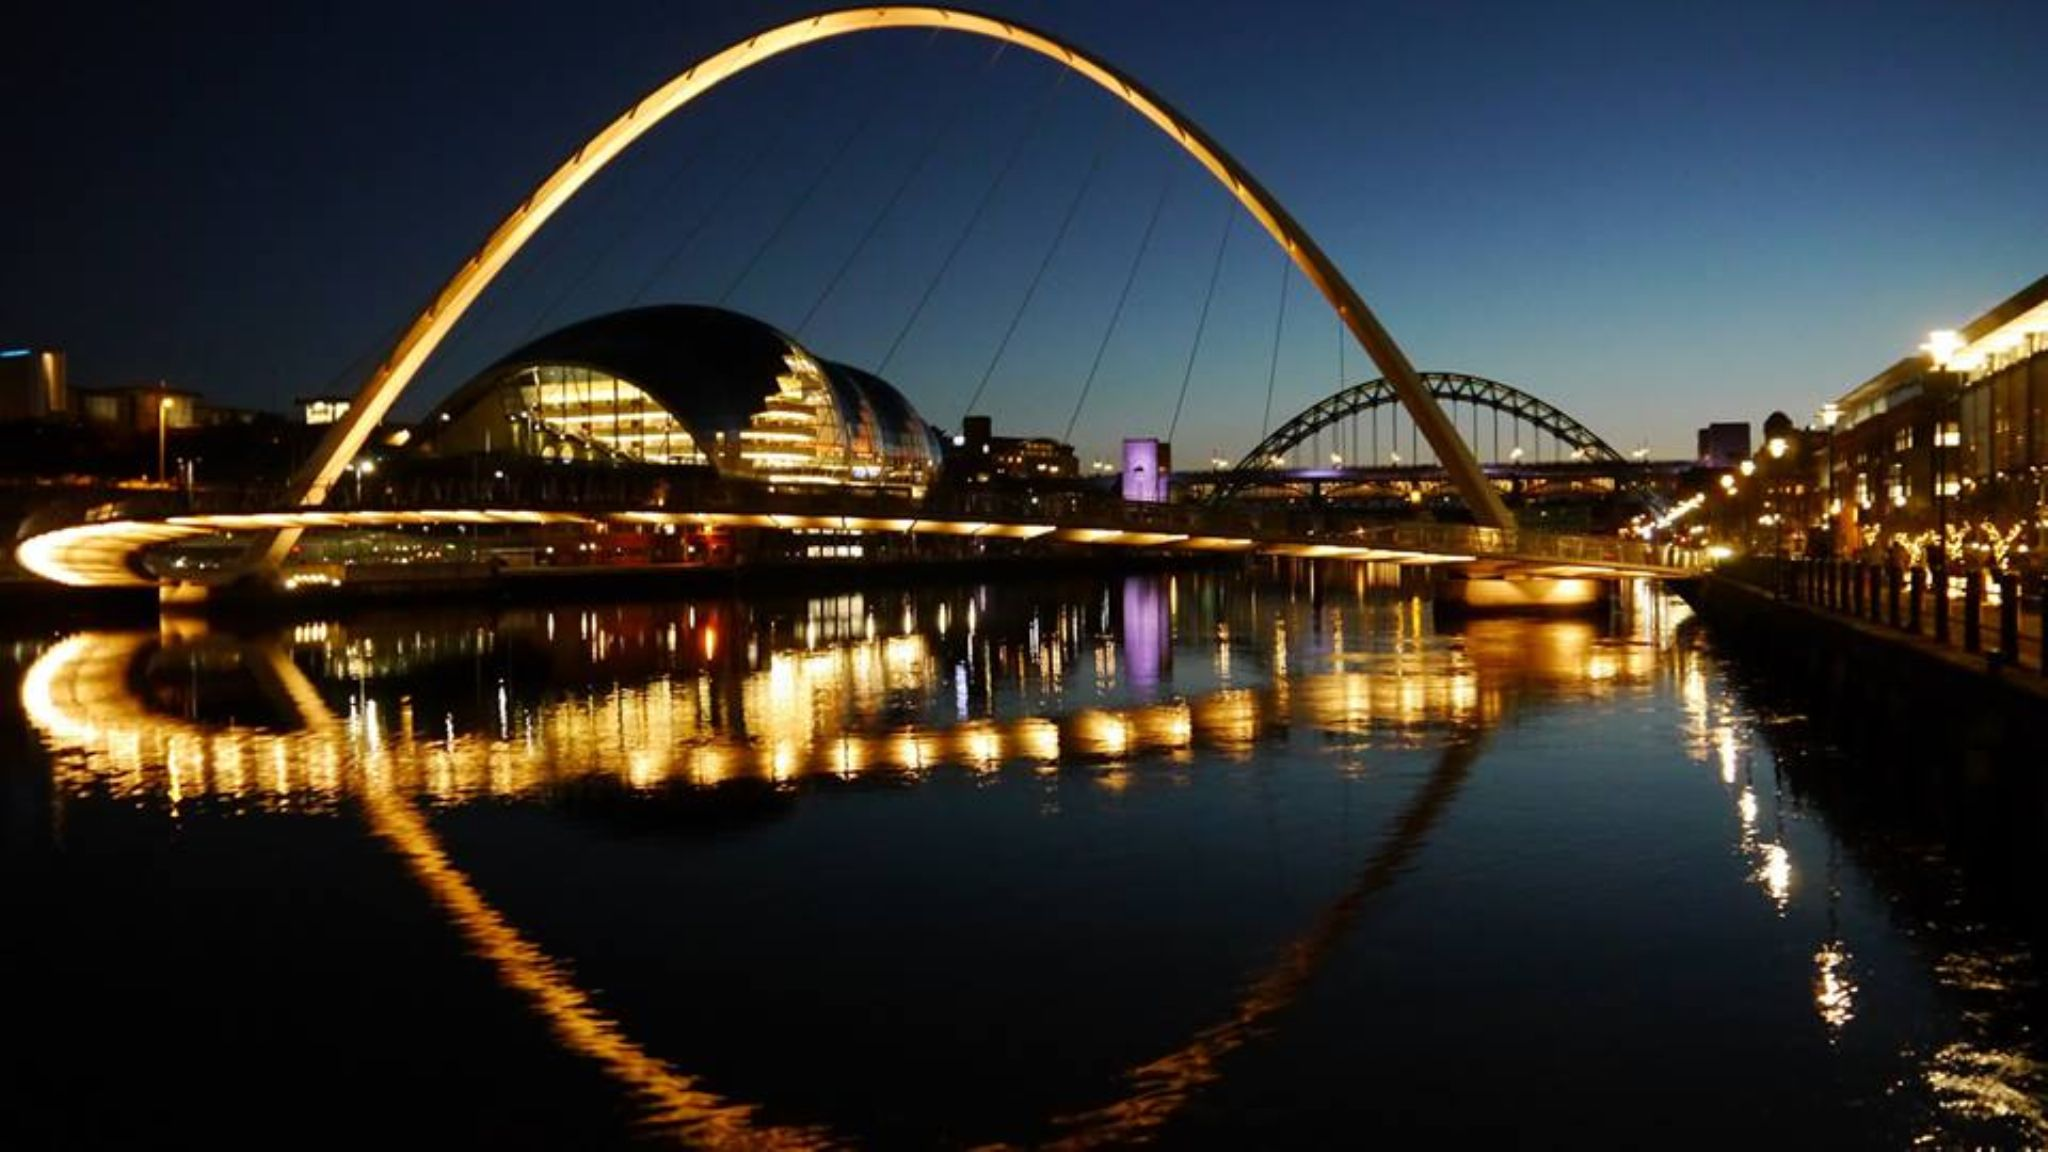 Reflections on the River Tyne Newcastle by Darren Turner